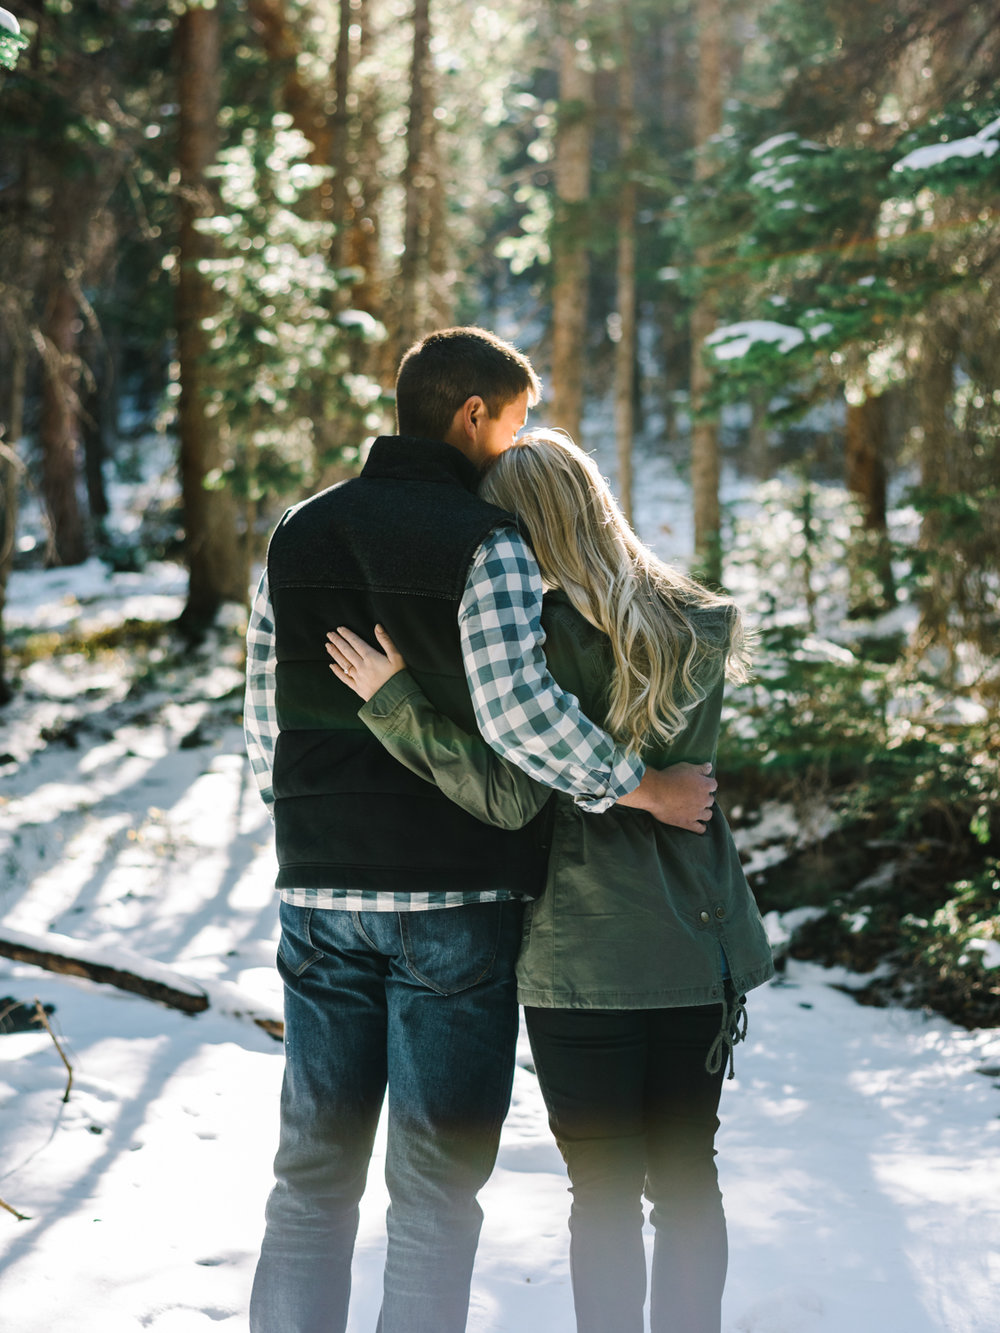 Rocky Mountain National Park Engagement-Neal Dieker-Colorado Photographer-Wichita, Kansas Photographer-Rocky Mountain Photography-114.jpg